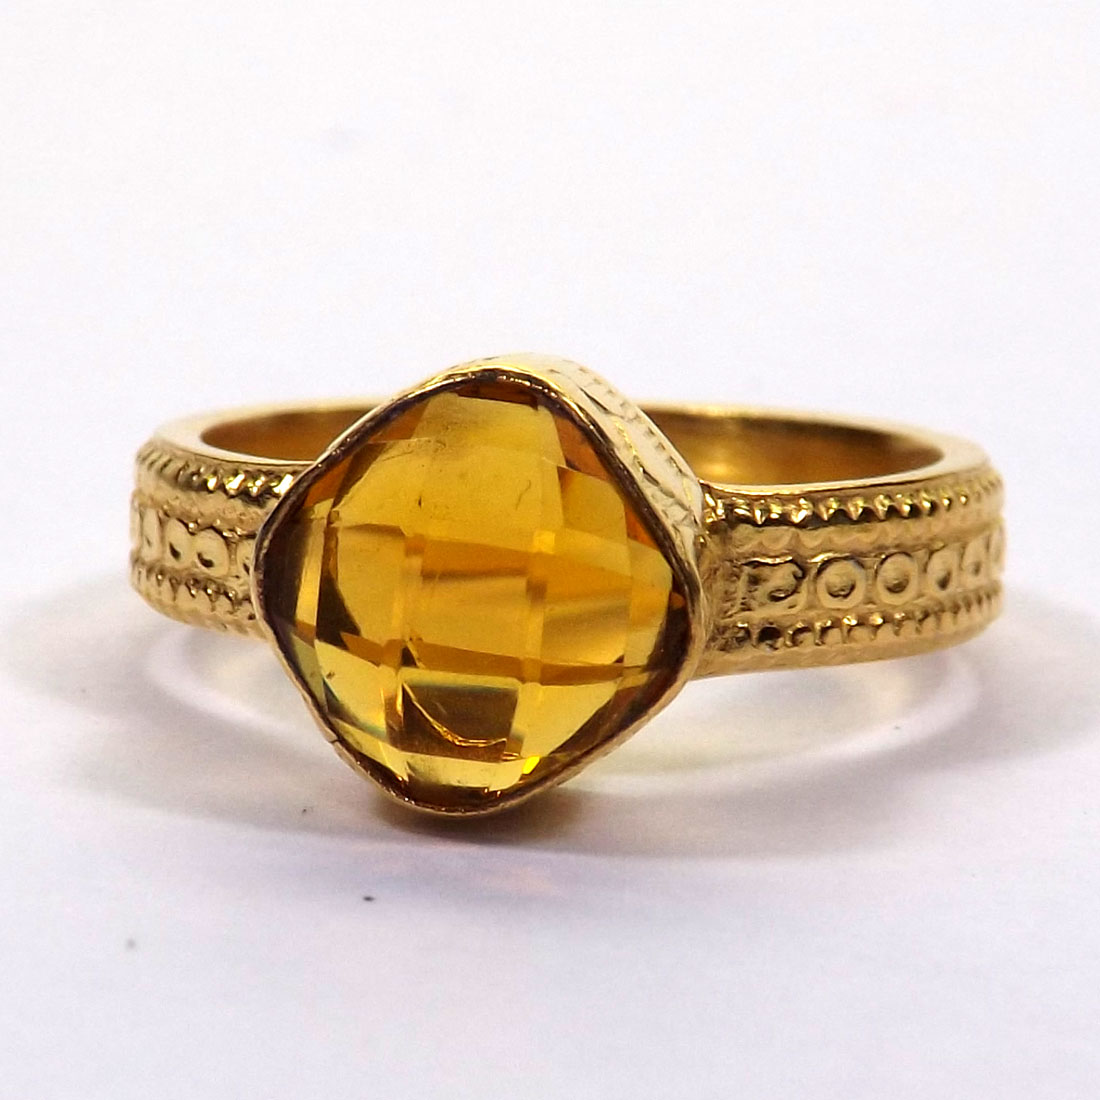 CITRINE HYDRO GLASS A - HBR998 BEAUTIFUL CITRINE HYDRO GLASS HANDMADE BRASS RINGS